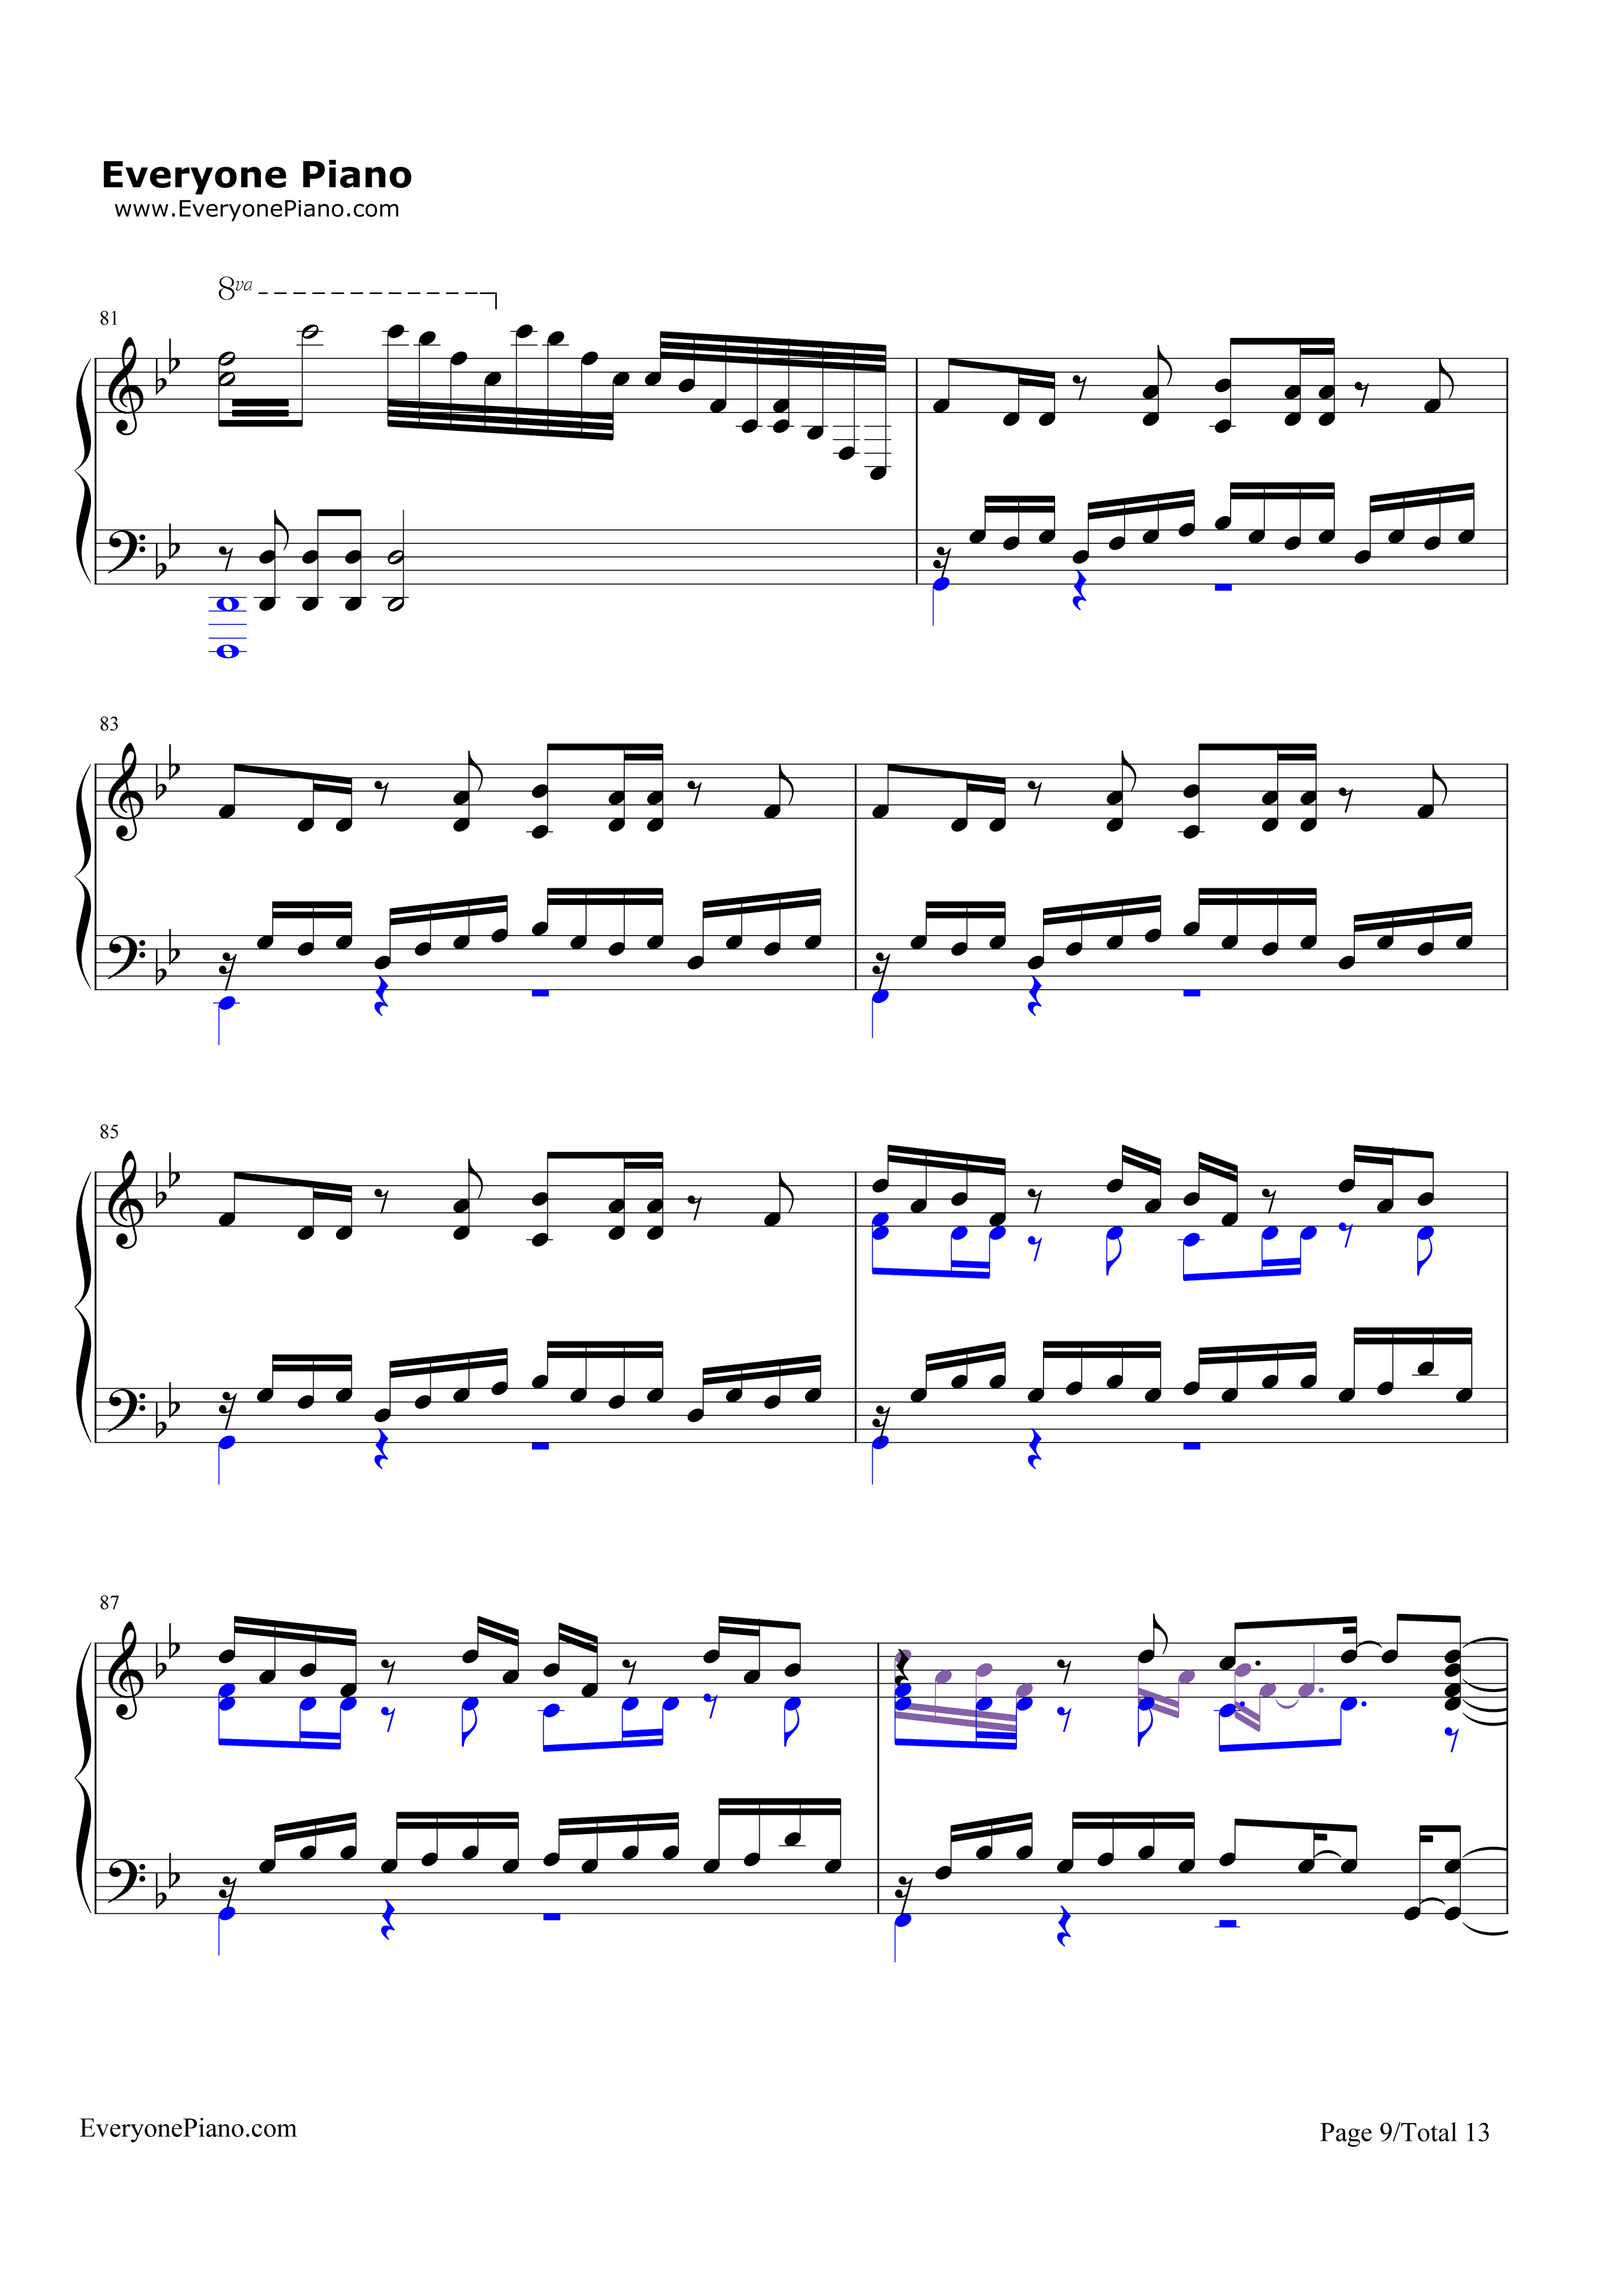 Unravel-Tokyo Ghoul Theme Stave Preview 9-Free Piano Sheet Music u0026 Piano Chords